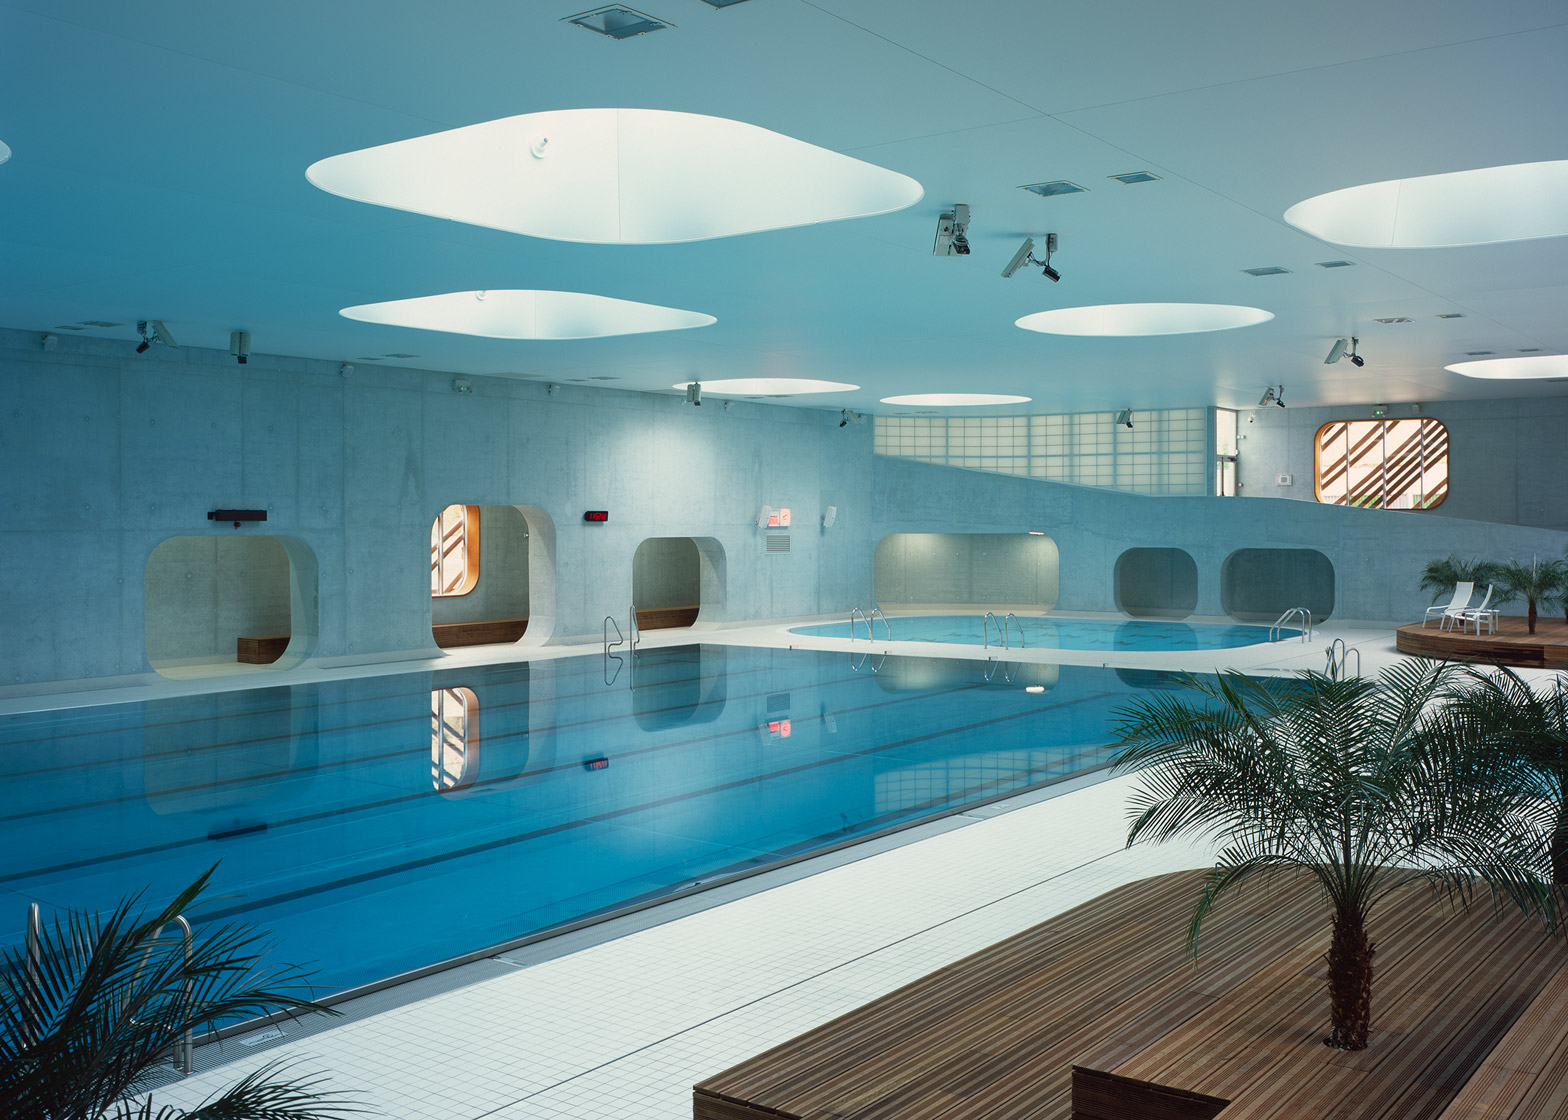 Piscine issy les moulineaux hb6 e architect for Piscine paris